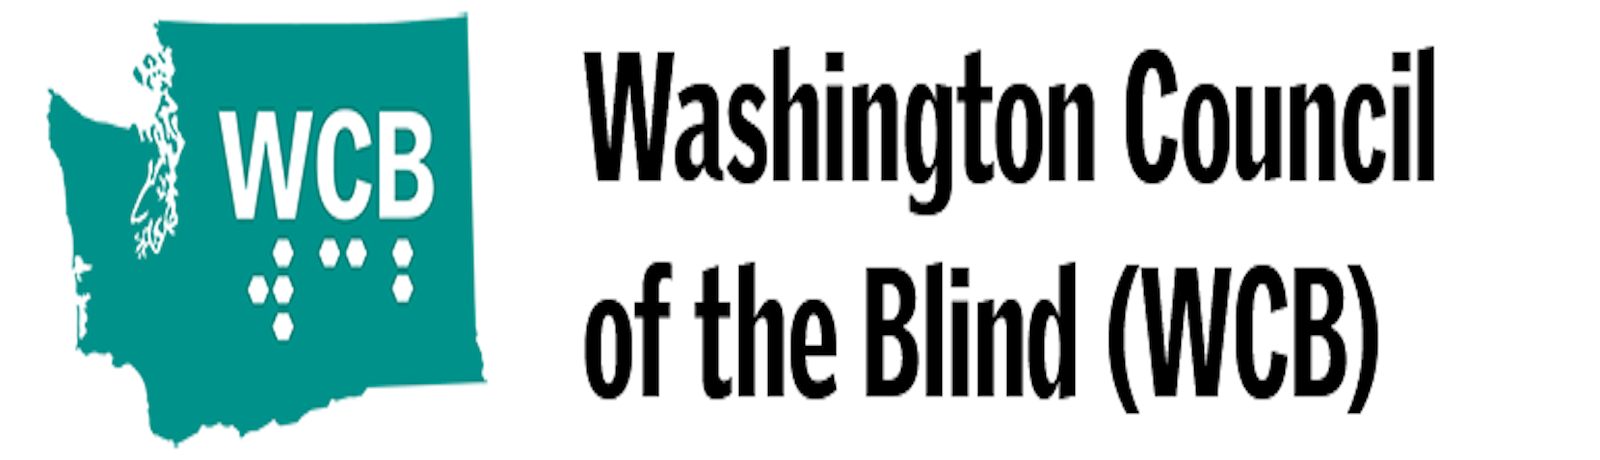 Washington Council of the Blind